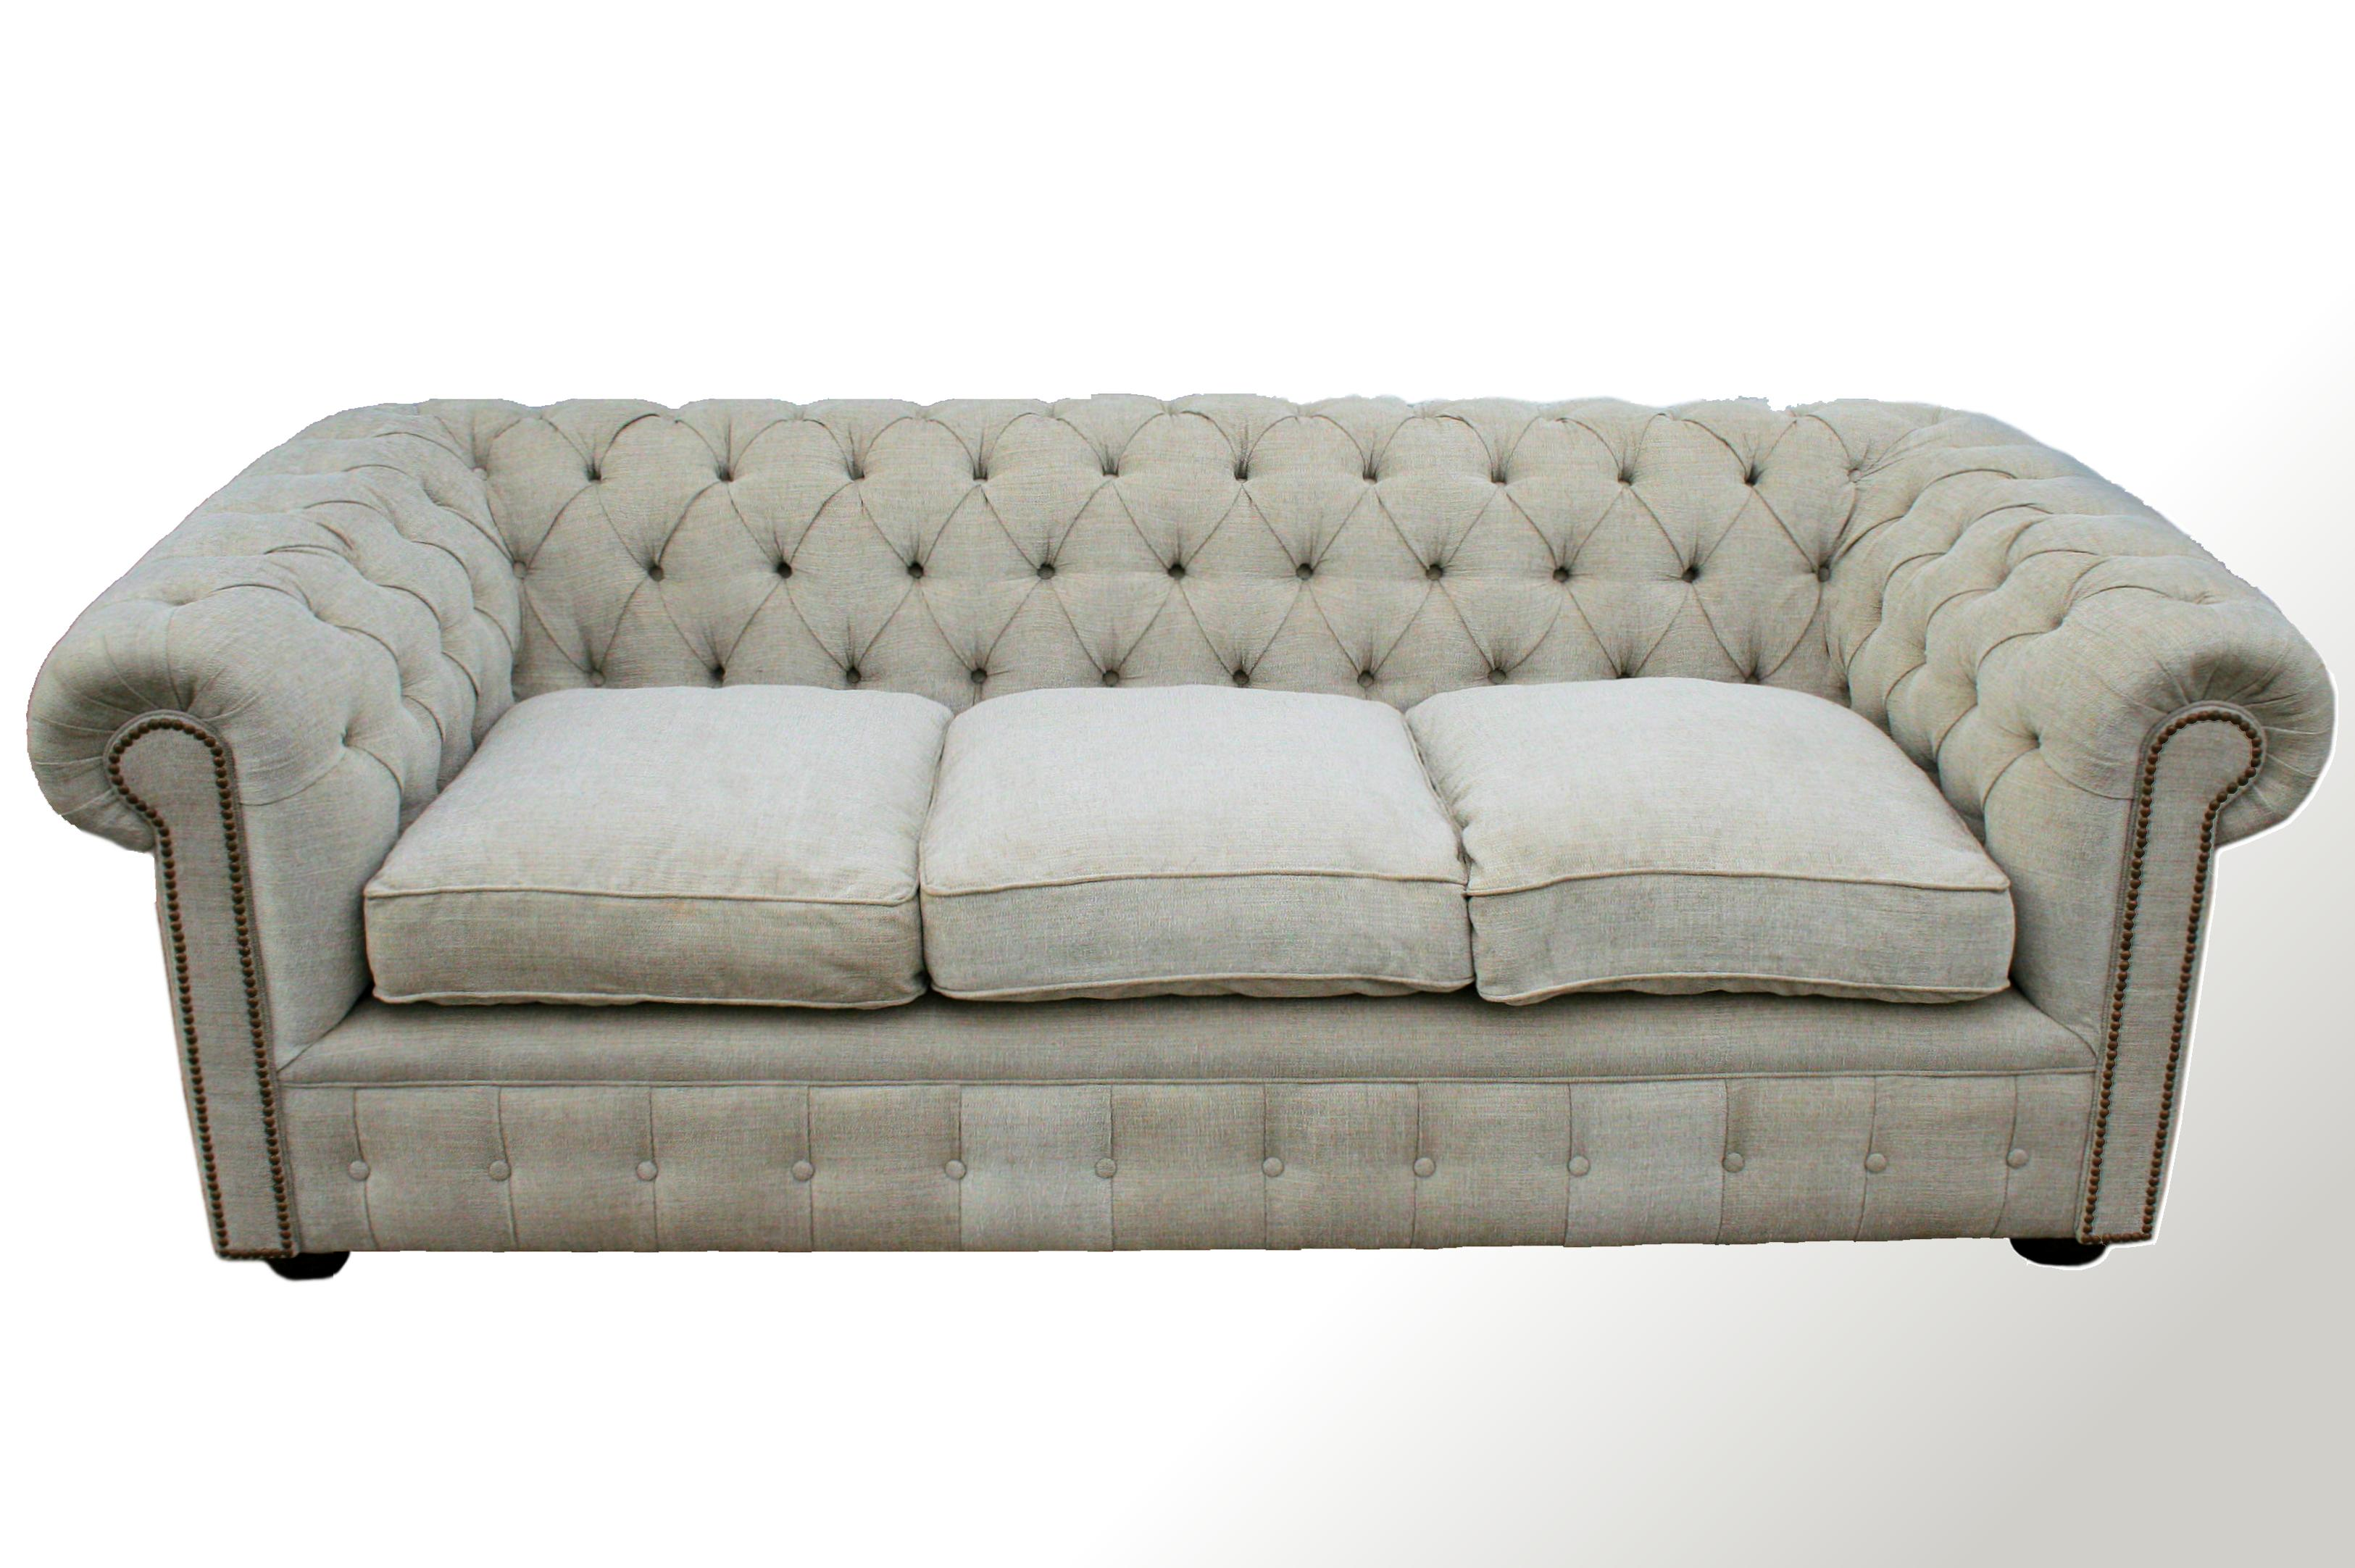 Sof chesterfield 3 cuerpos en lino chesterman a for Sofa 3 cuerpos salerno